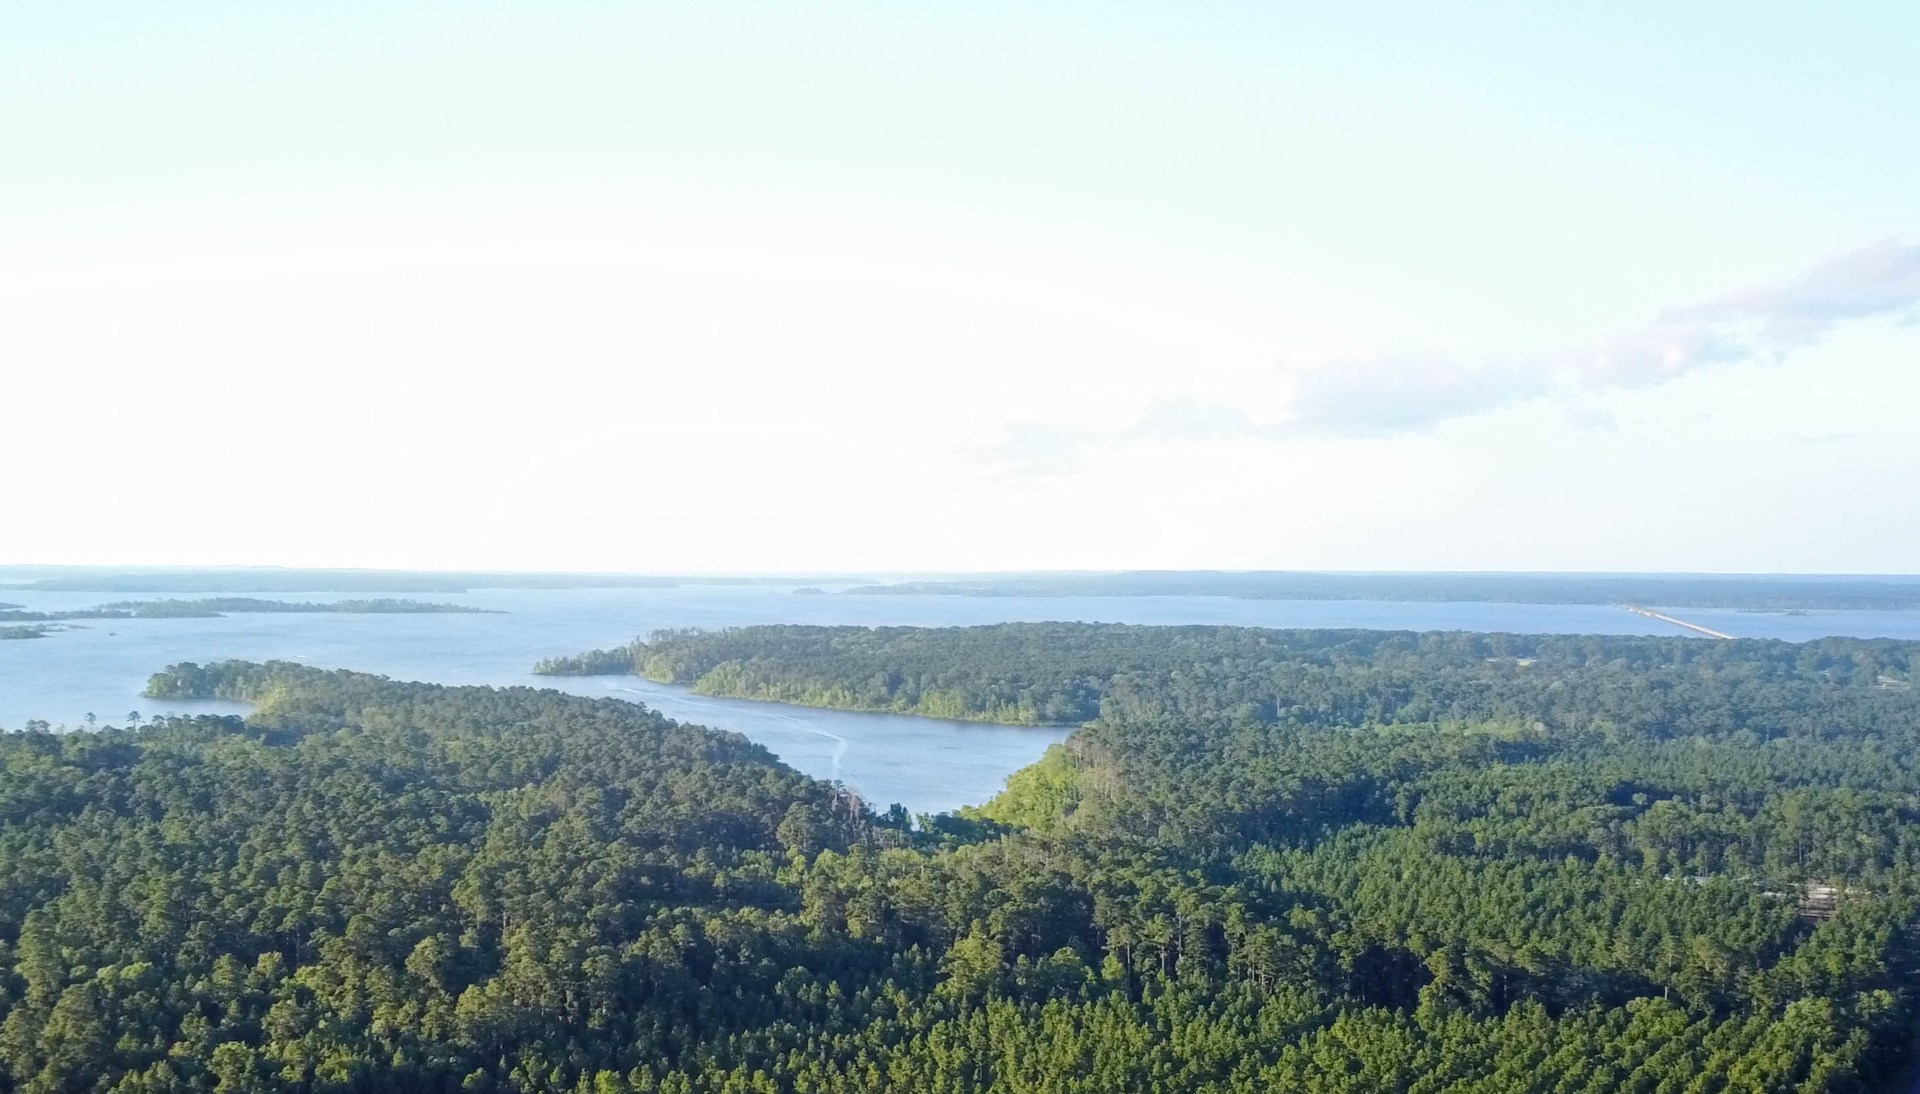 5.6 ACRES LAKE SAM RAYBURN LAND FOR SALE | HWY 147 FRONTAGE